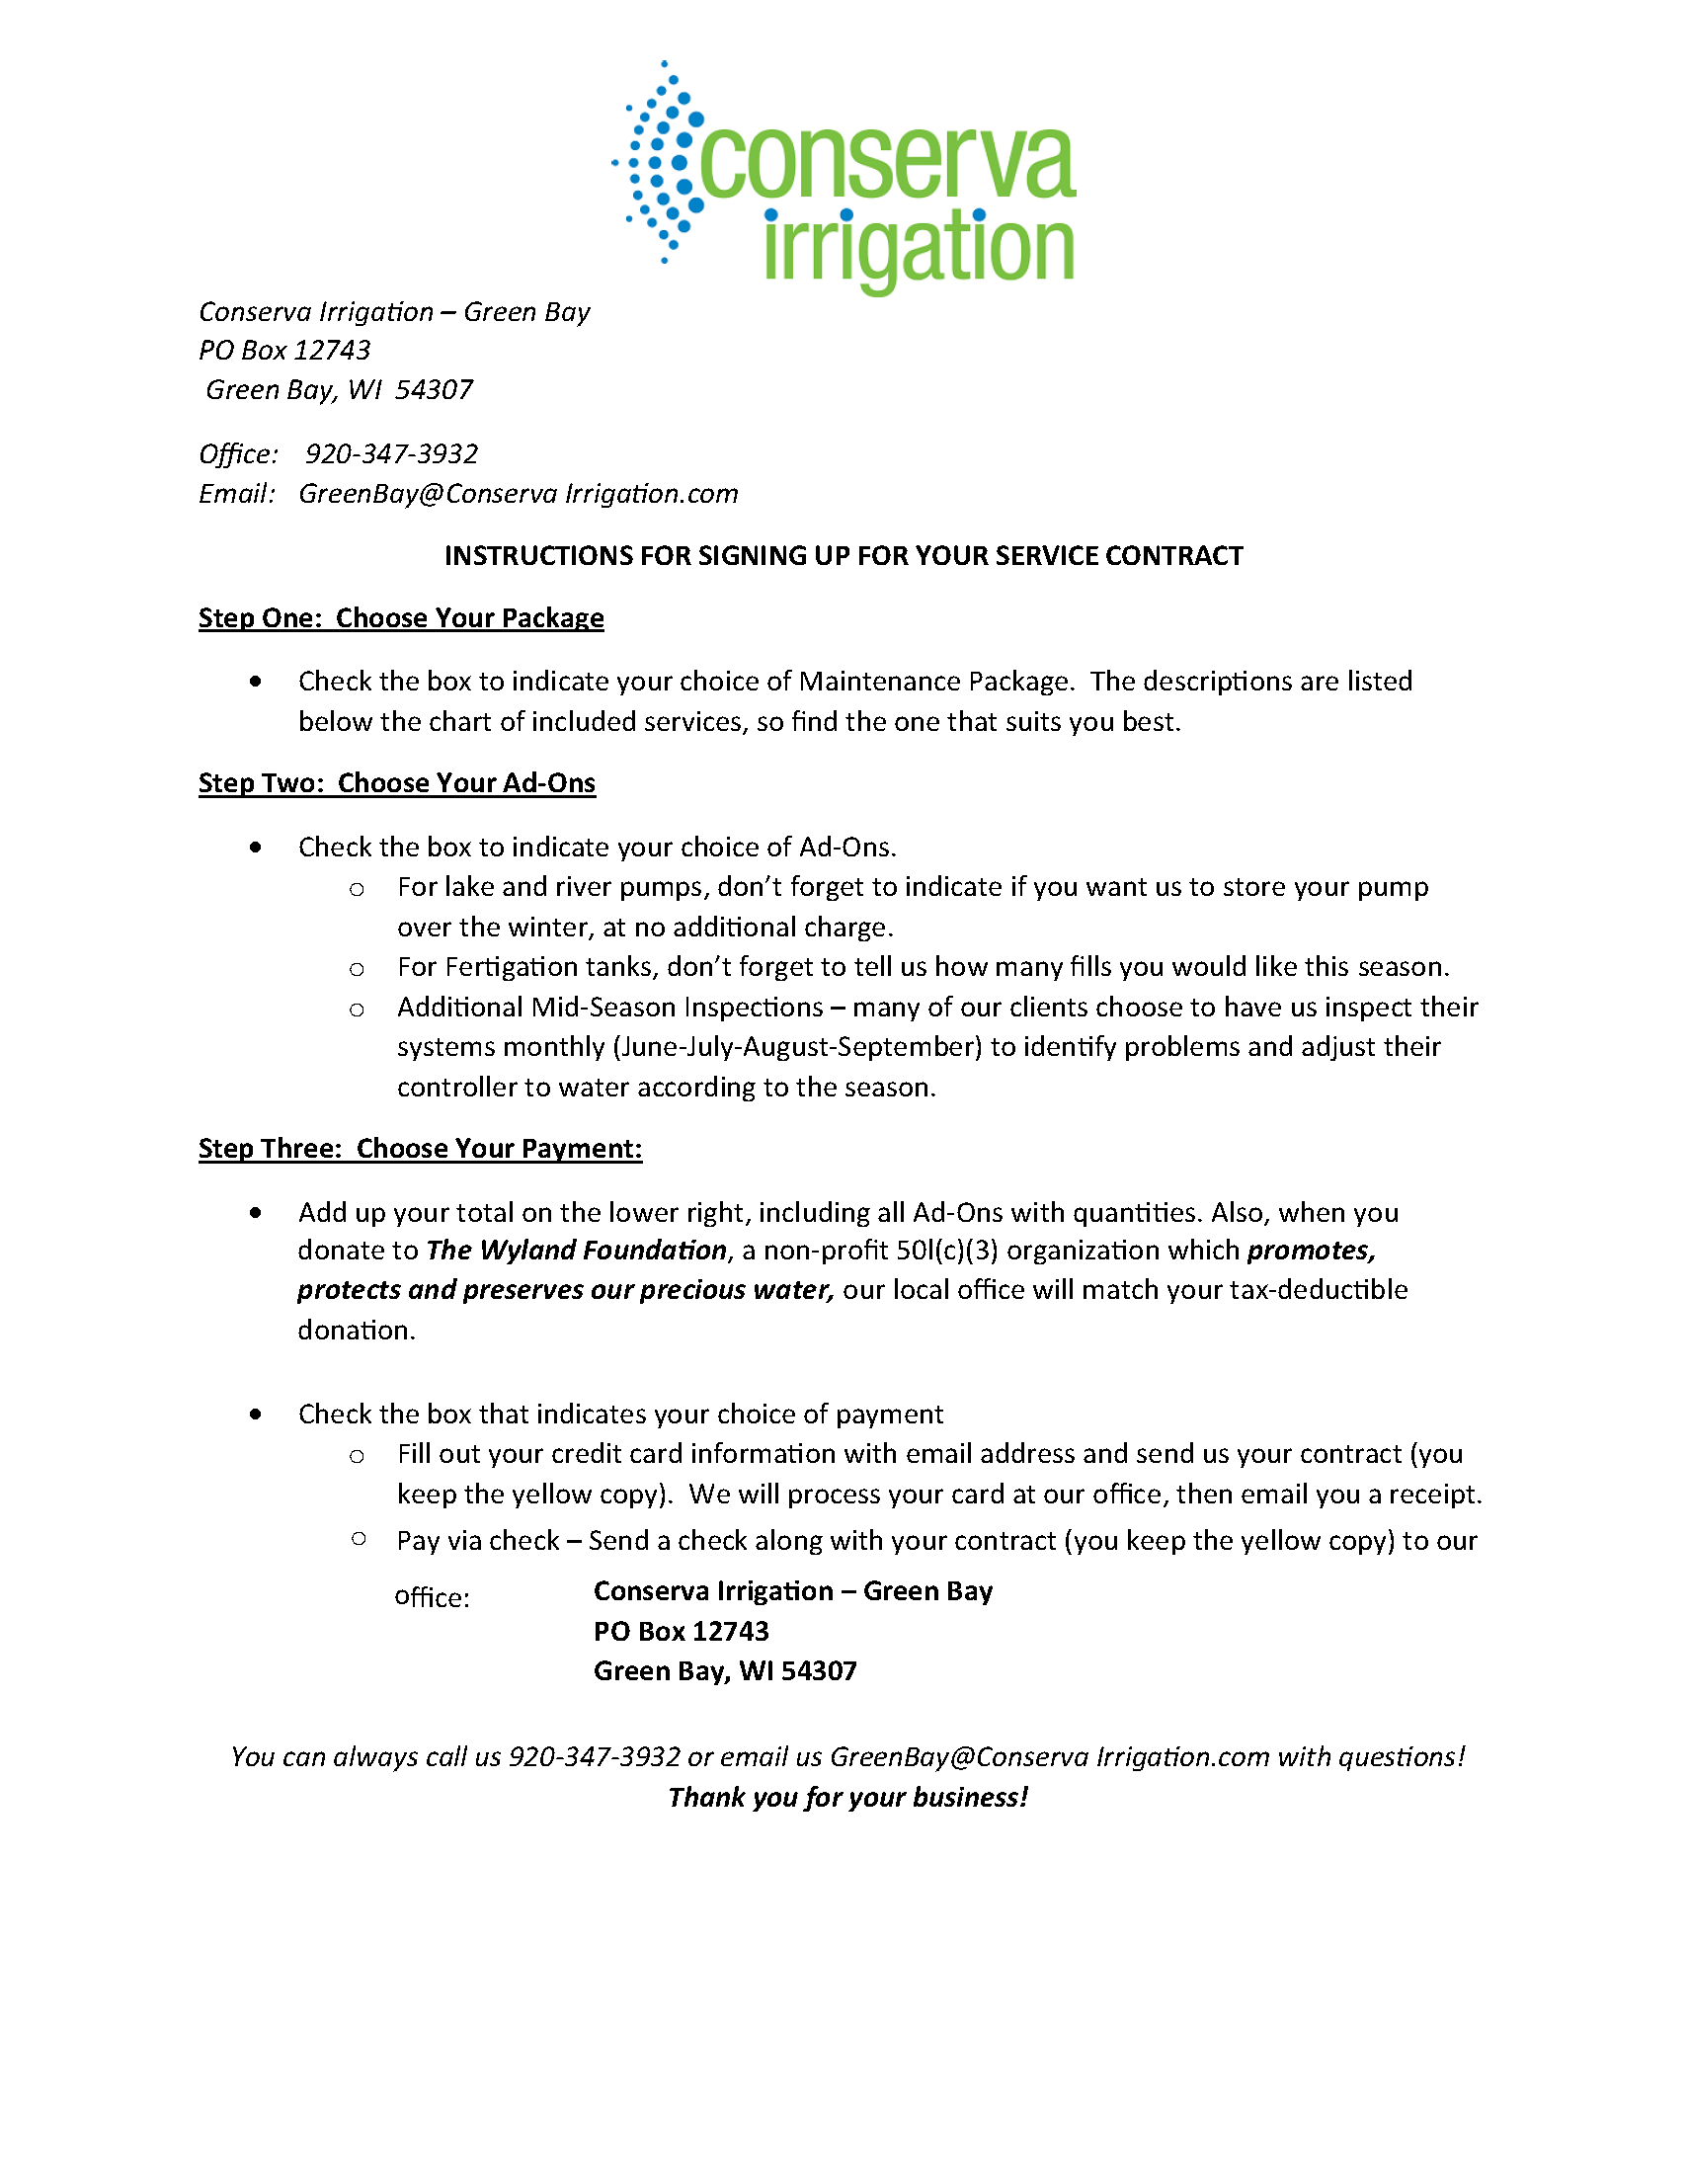 Conserva Irrigation Instructions for Signing Up for your Service Contract